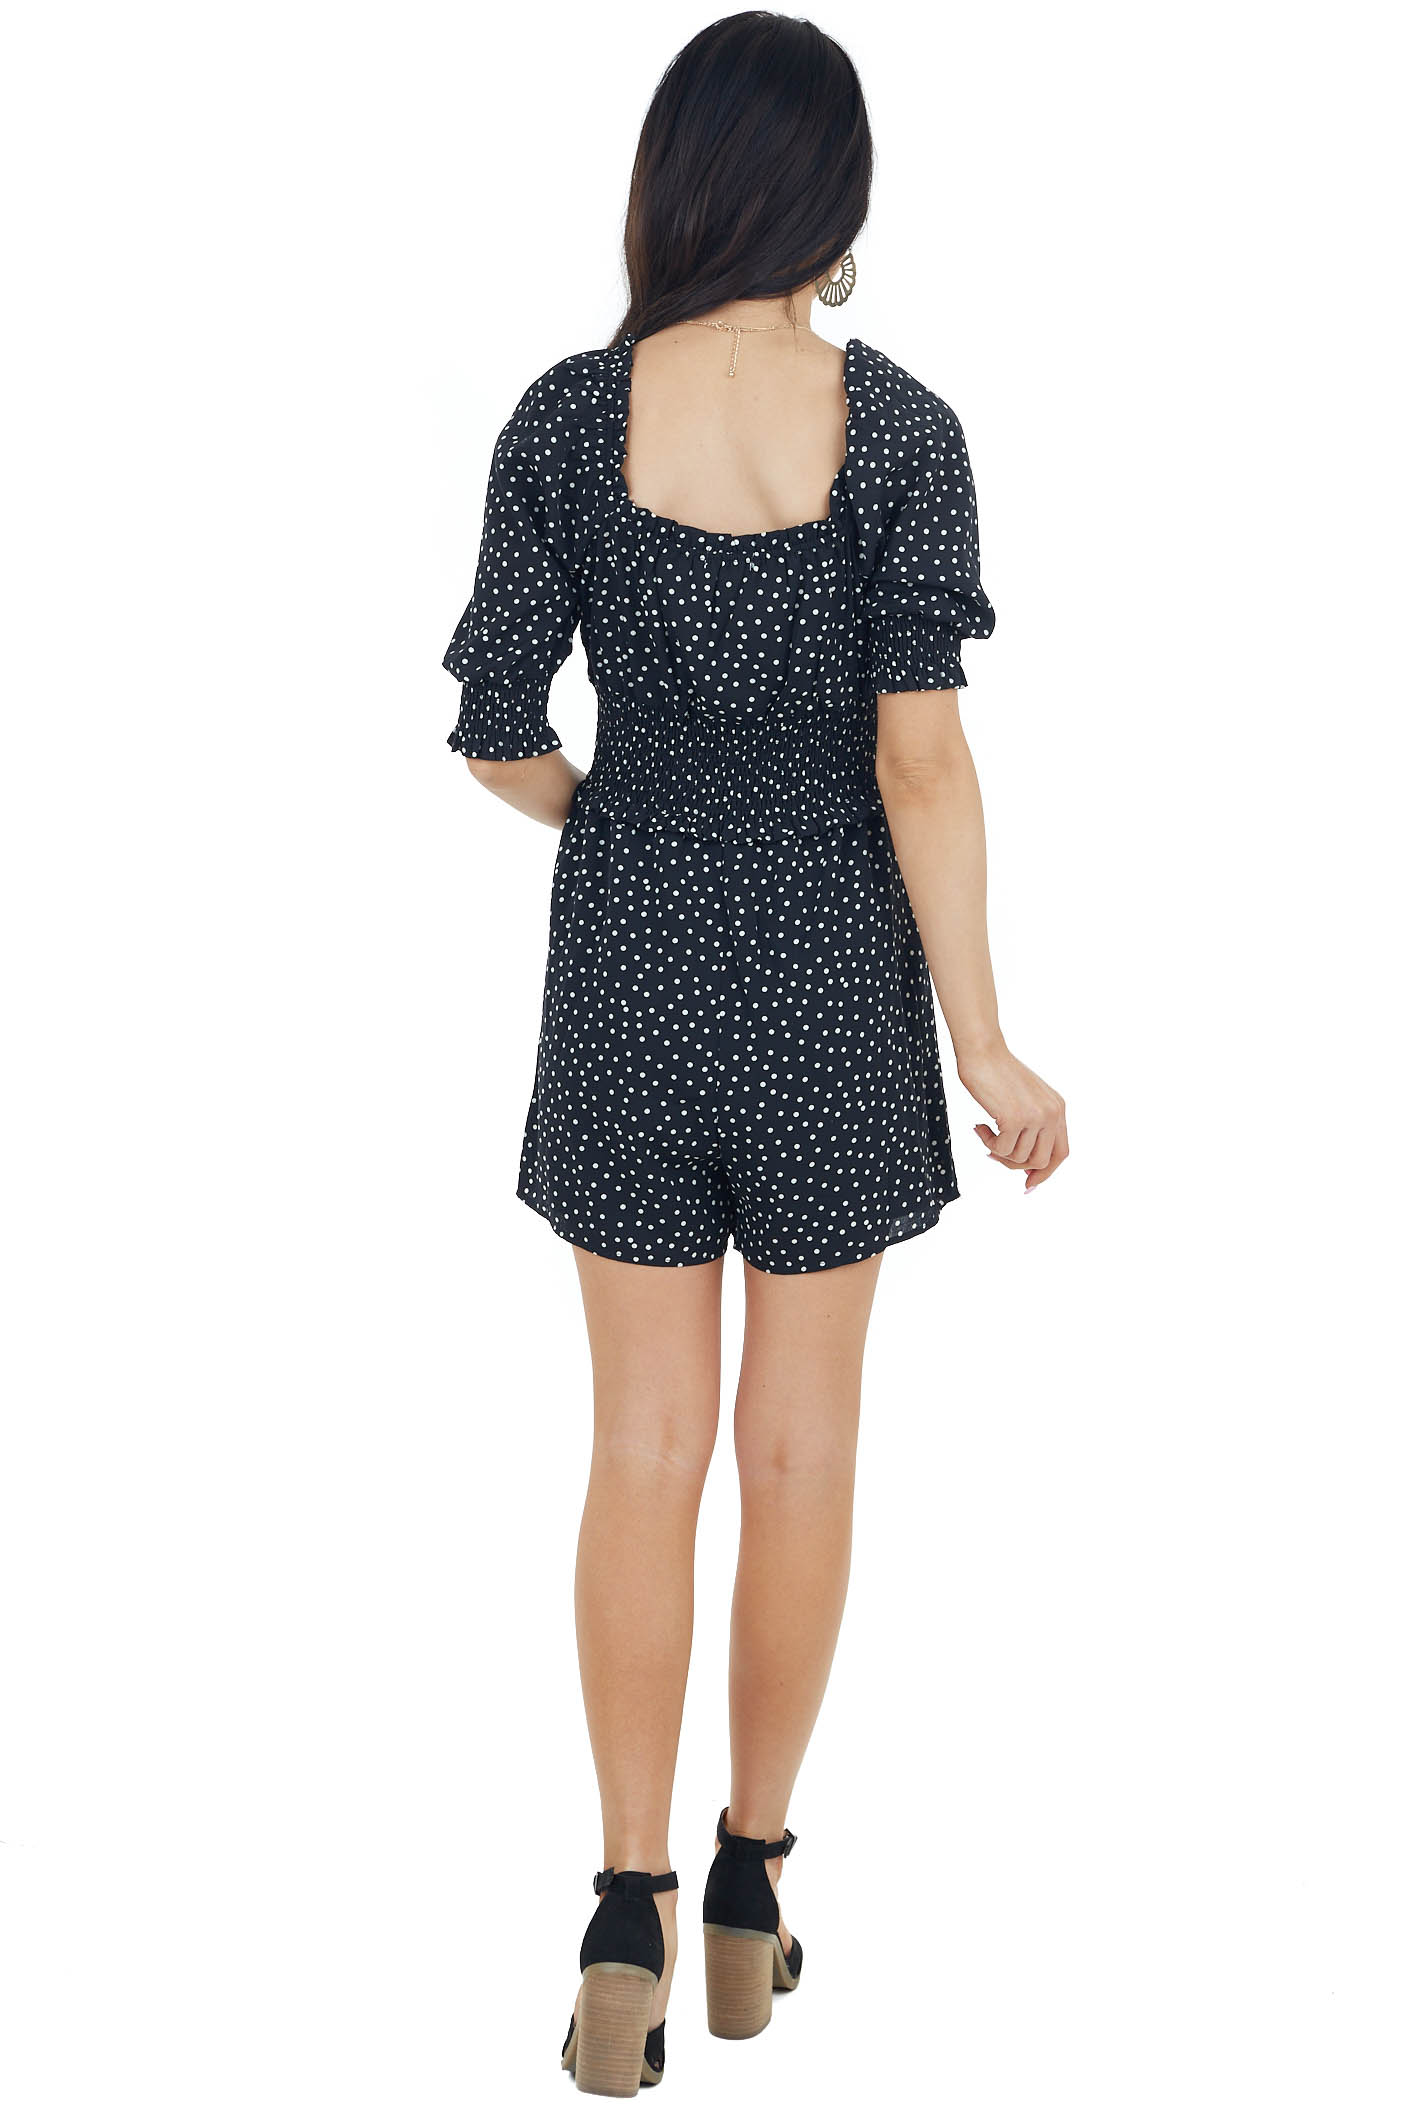 Black and White Polka Dot Smocked Romper with Ruffles Detail